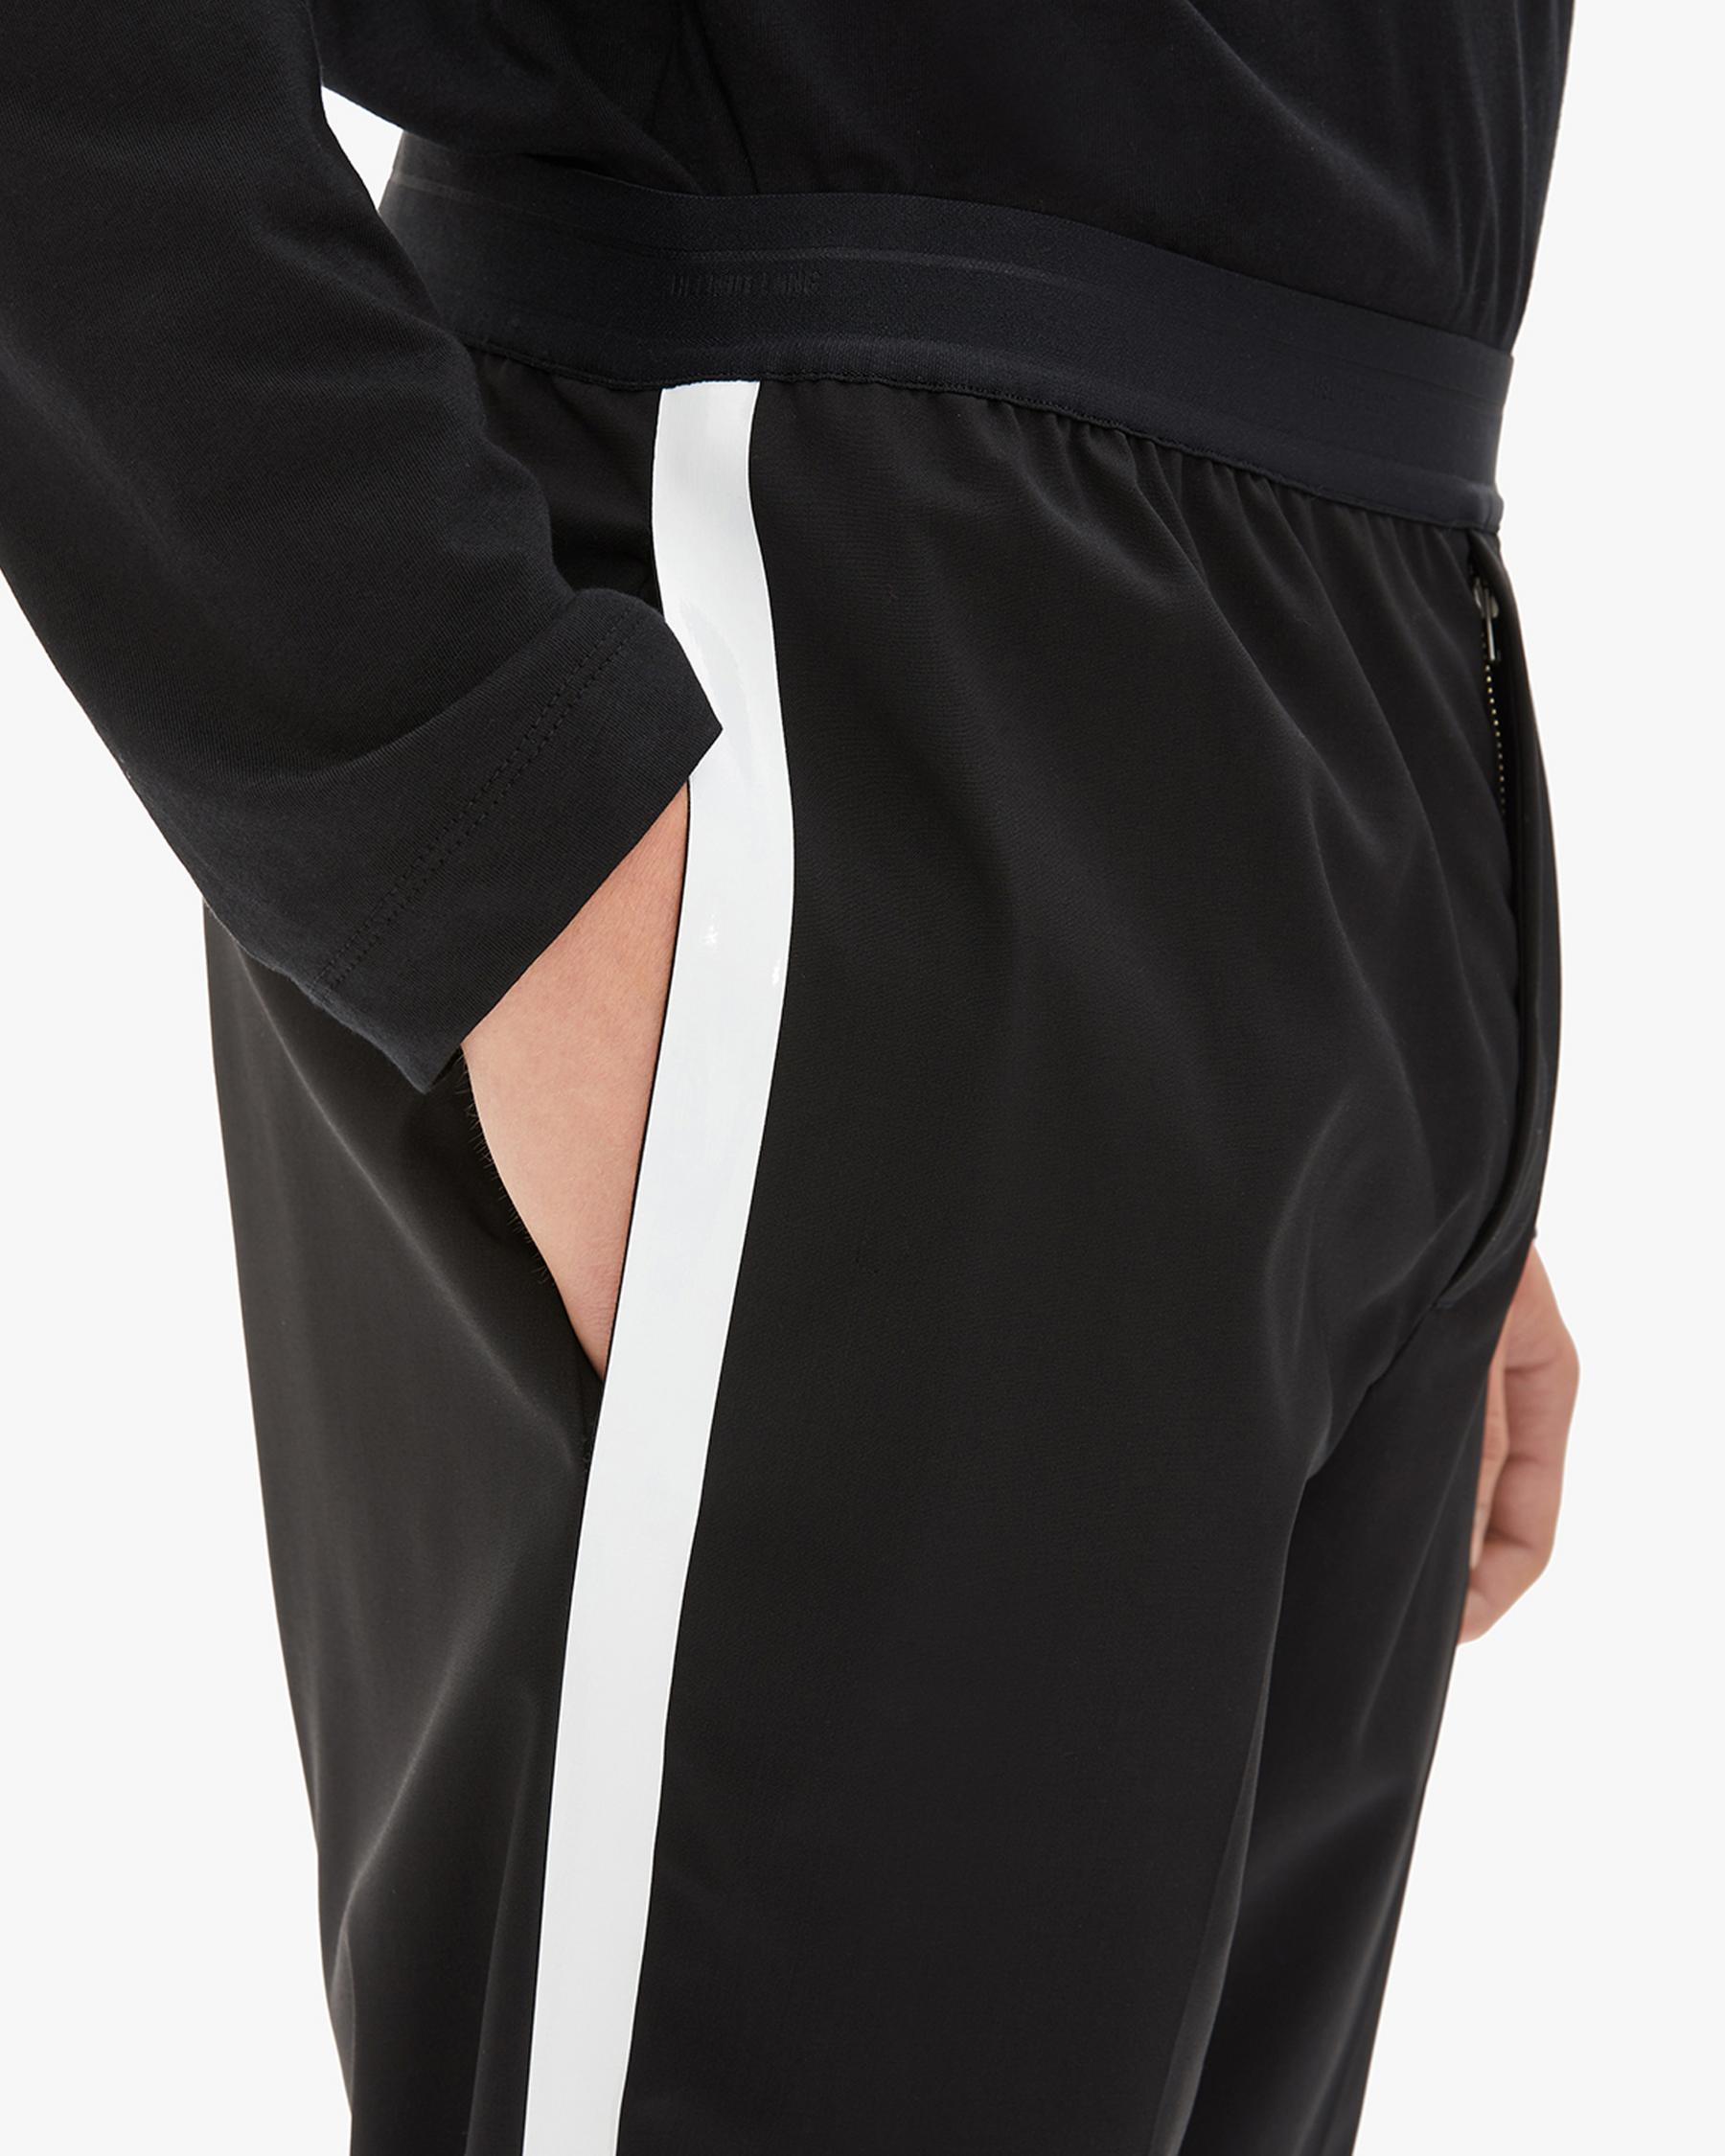 BAND PULL ON PANT 5